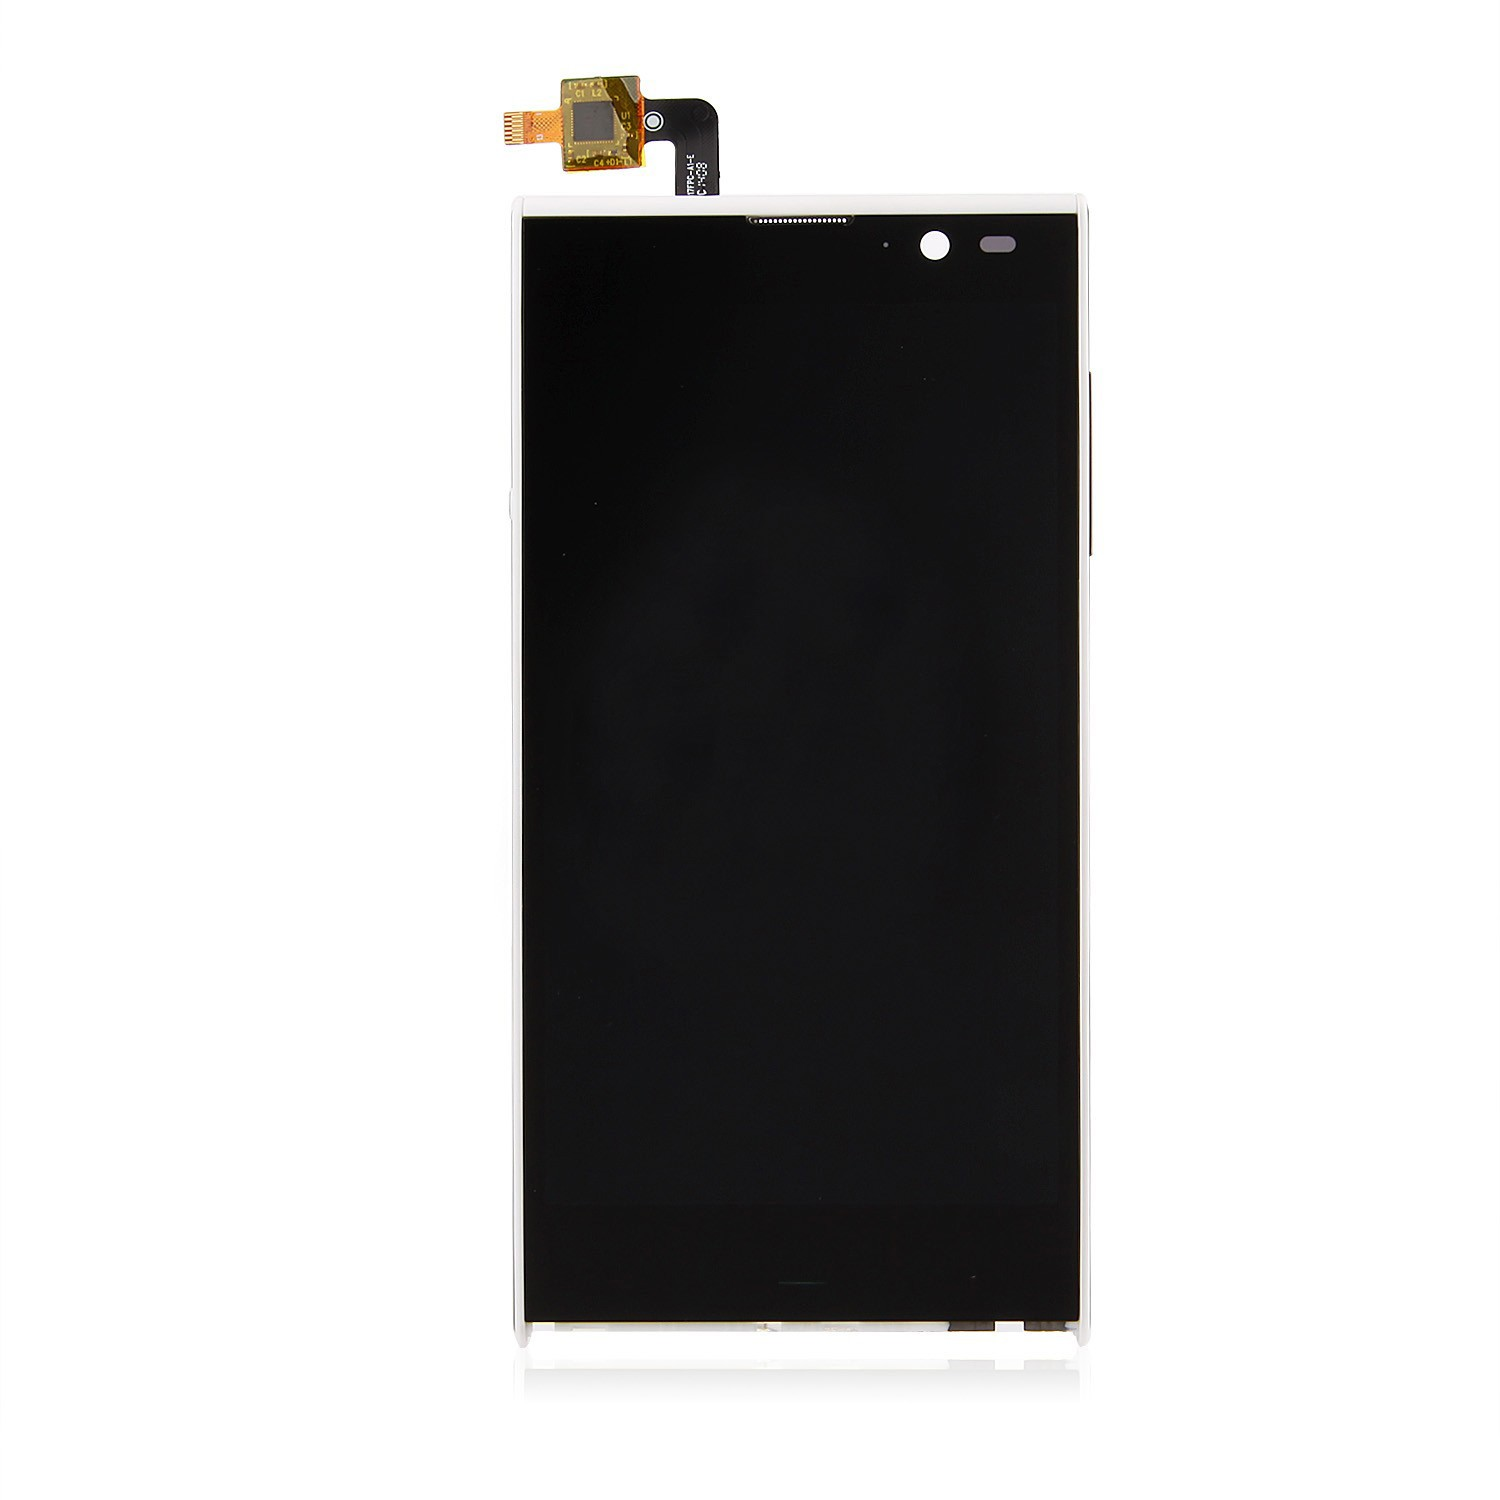 Sony tab and tablet Display Repair and Replacement In Chennai